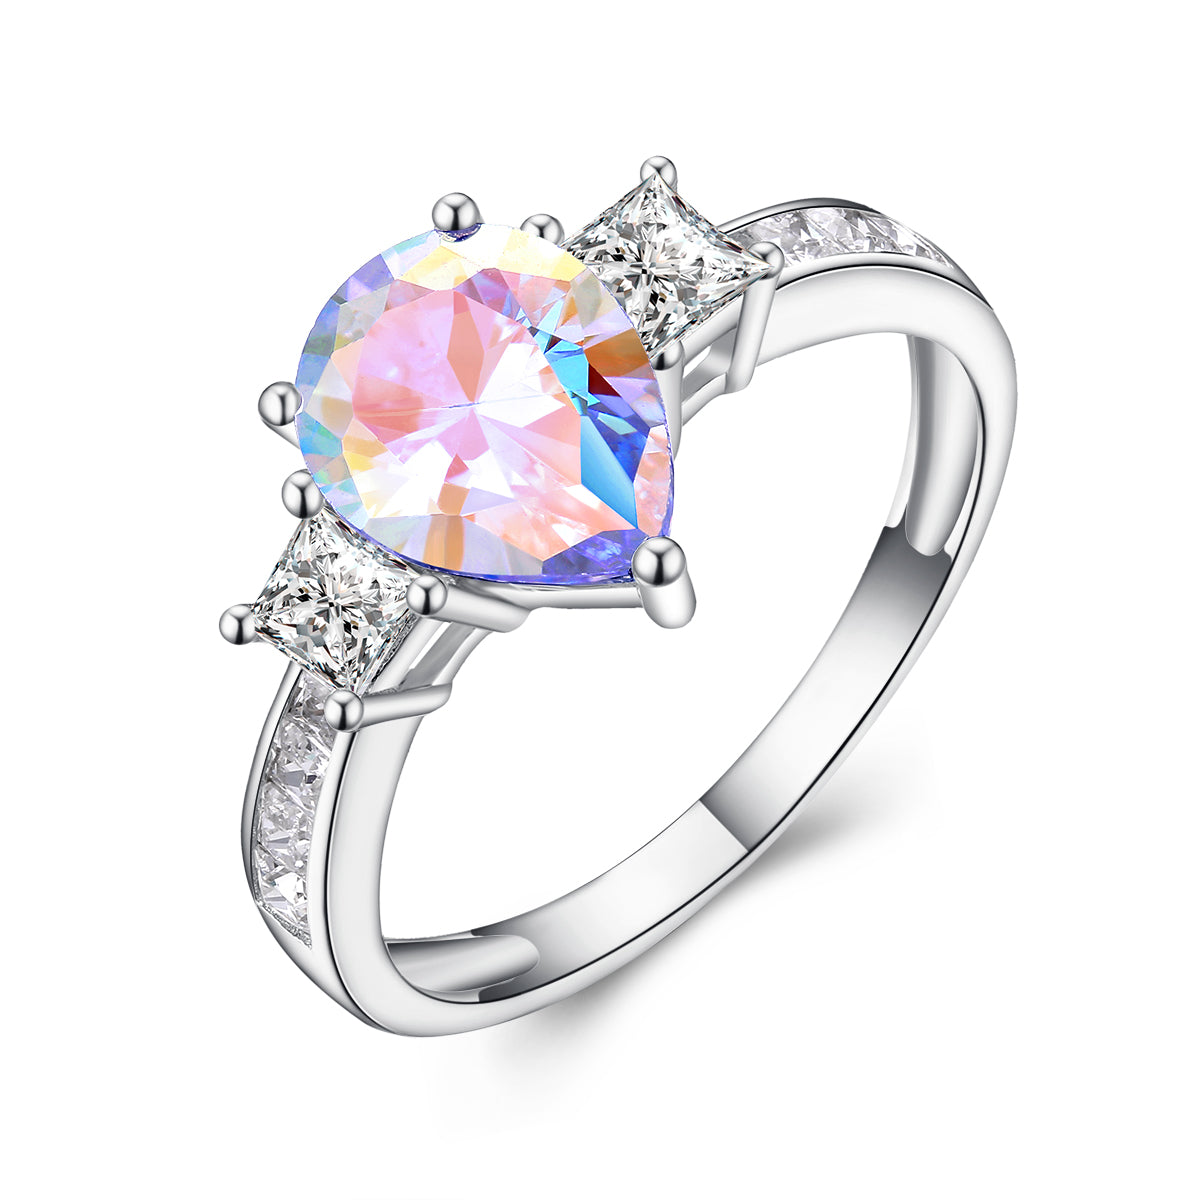 """Prism"" Aurora Borealis Three Stone Pear-Cut Ring in Sterling Silver"